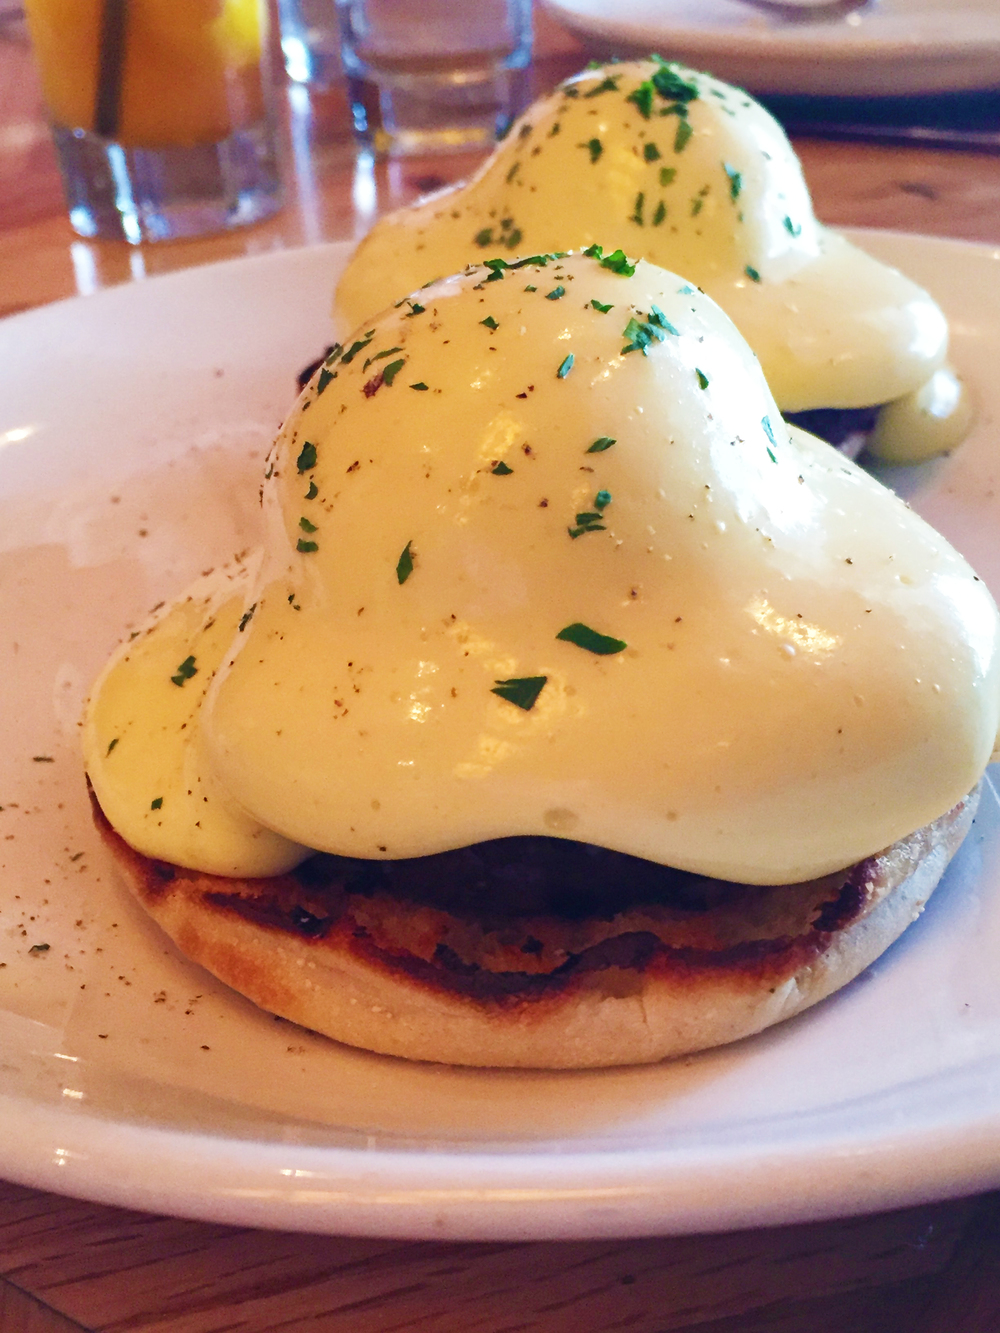 Smoked Pork Benedict with smoked pork roast, tomato, hollandaise, and english muffin.